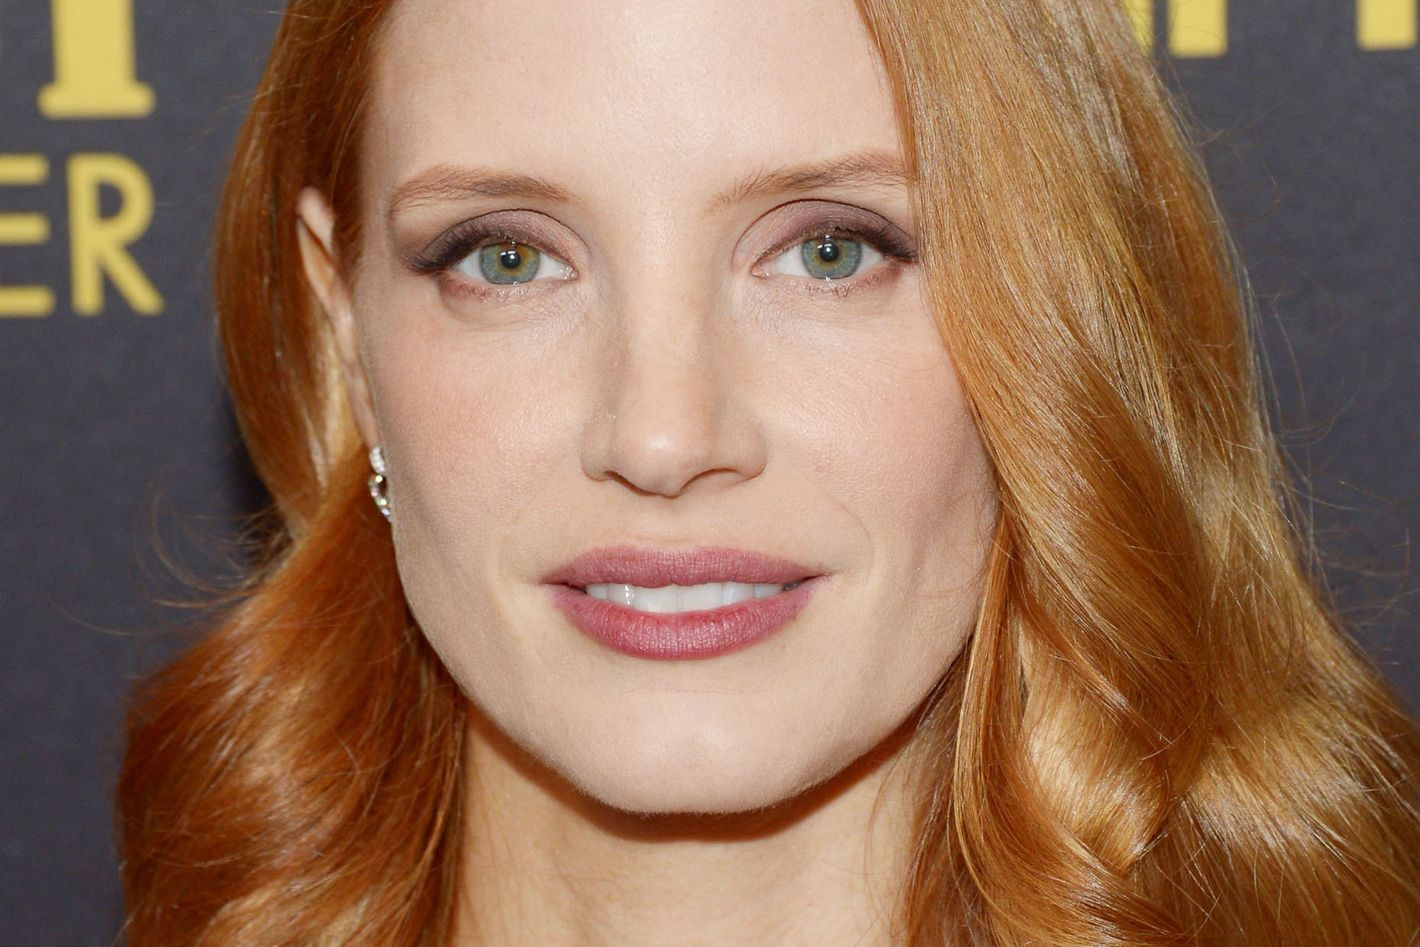 Jessica Chastain Developing Series About Female Astronauts